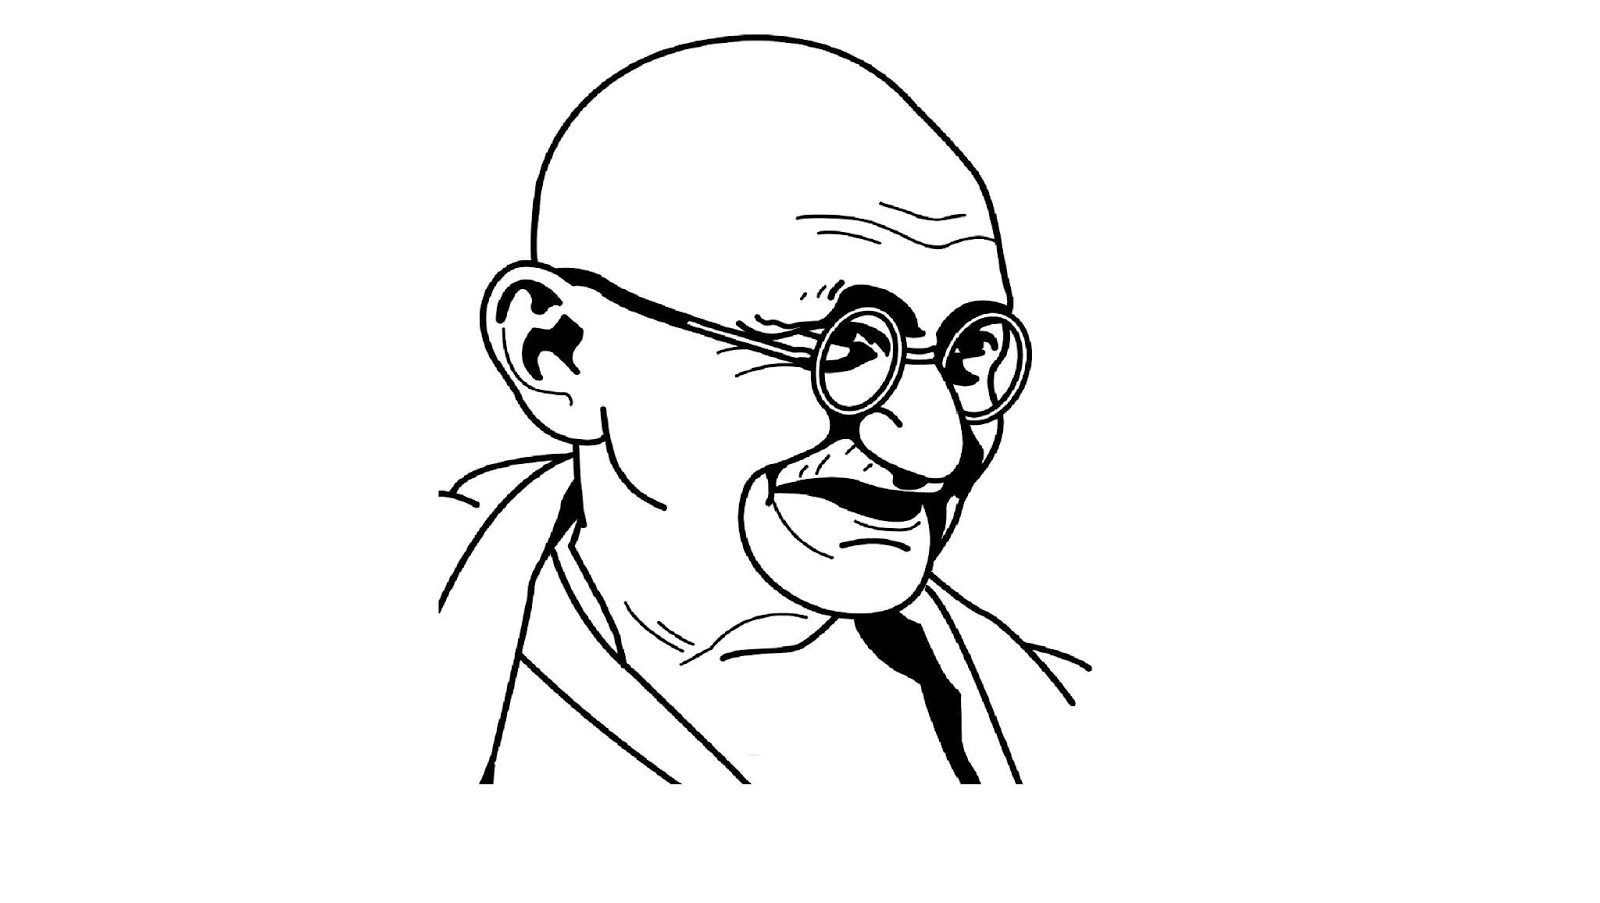 How to draw mahatma gandhi easy line drawing for kids